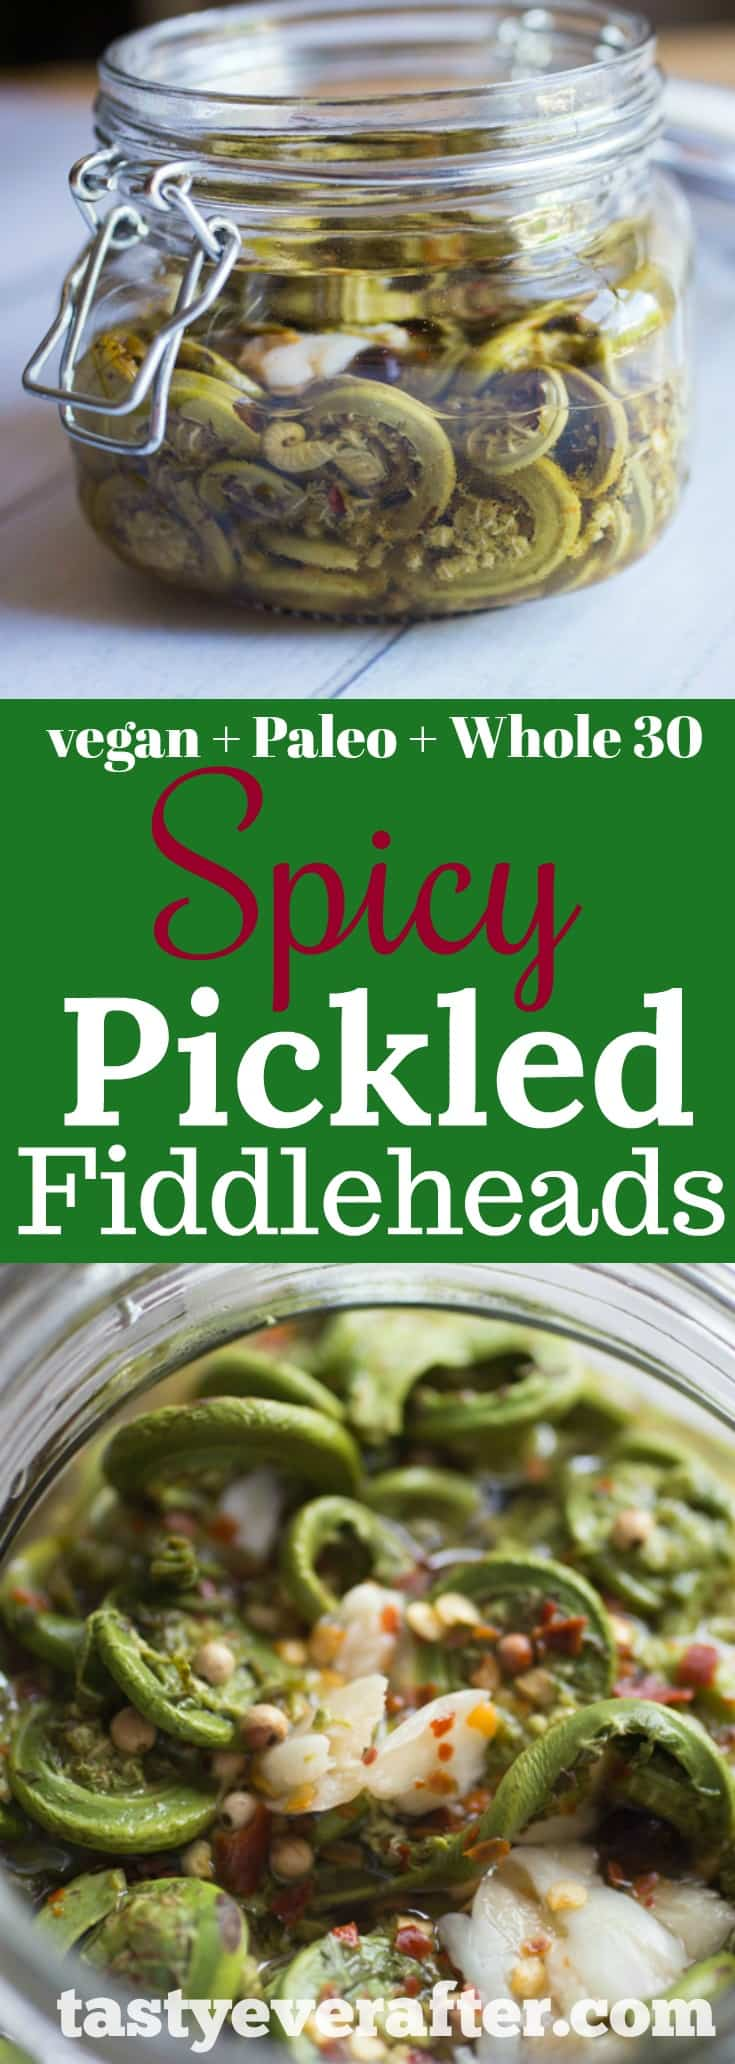 Spicy Pickled Fiddleheads Recipe